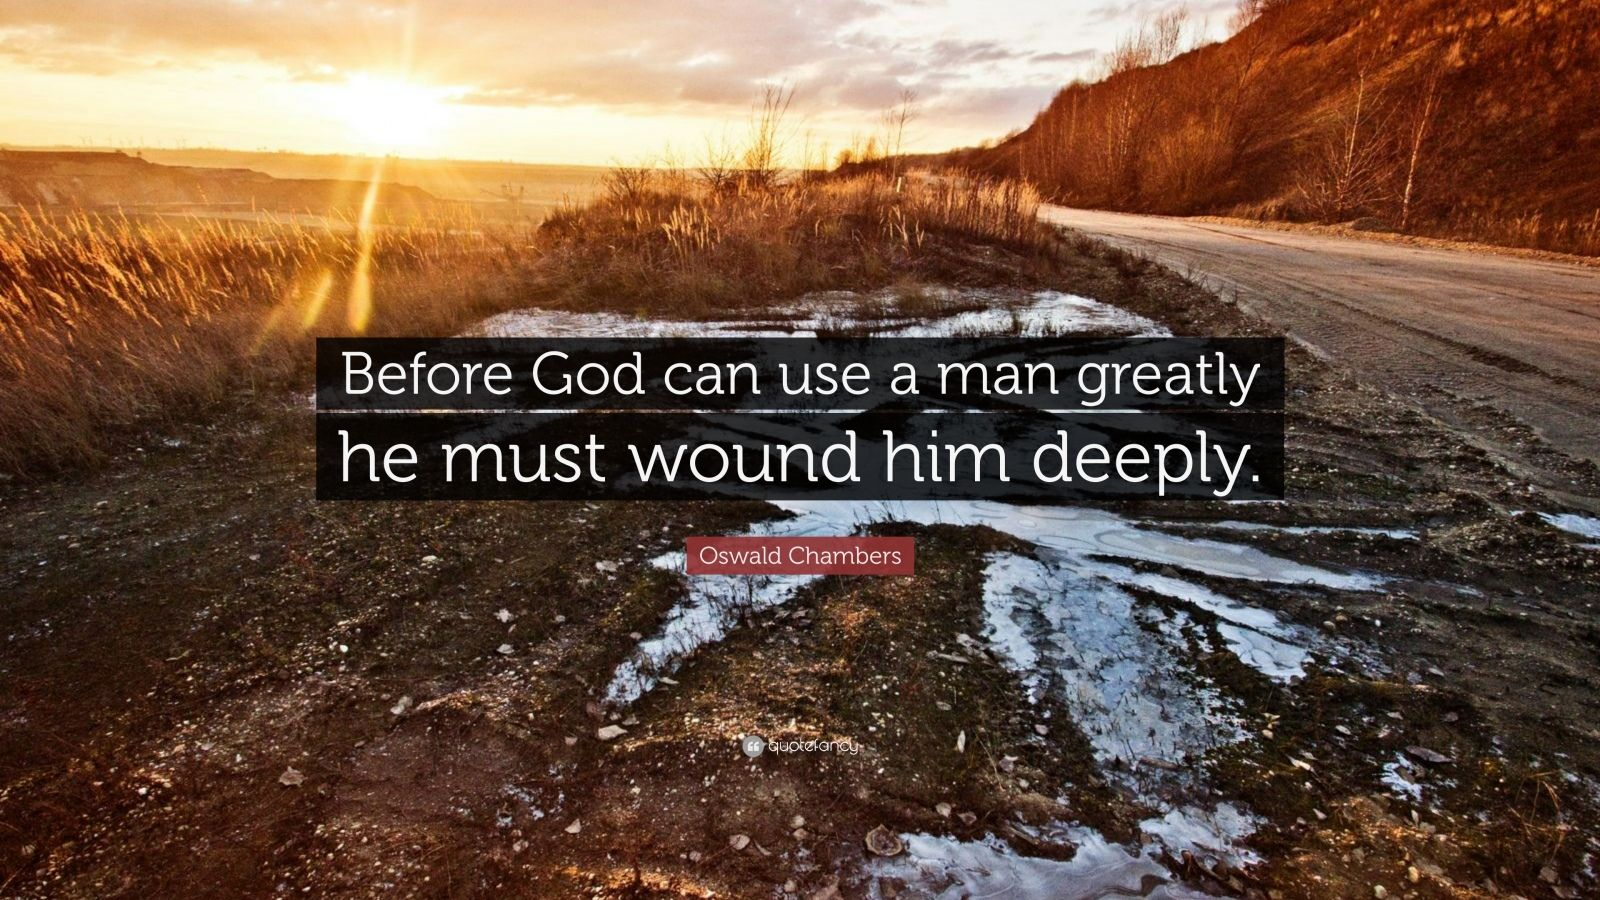 """Oswald Chambers Quote: """"Before God can use a man greatly he must wound him deeply."""""""